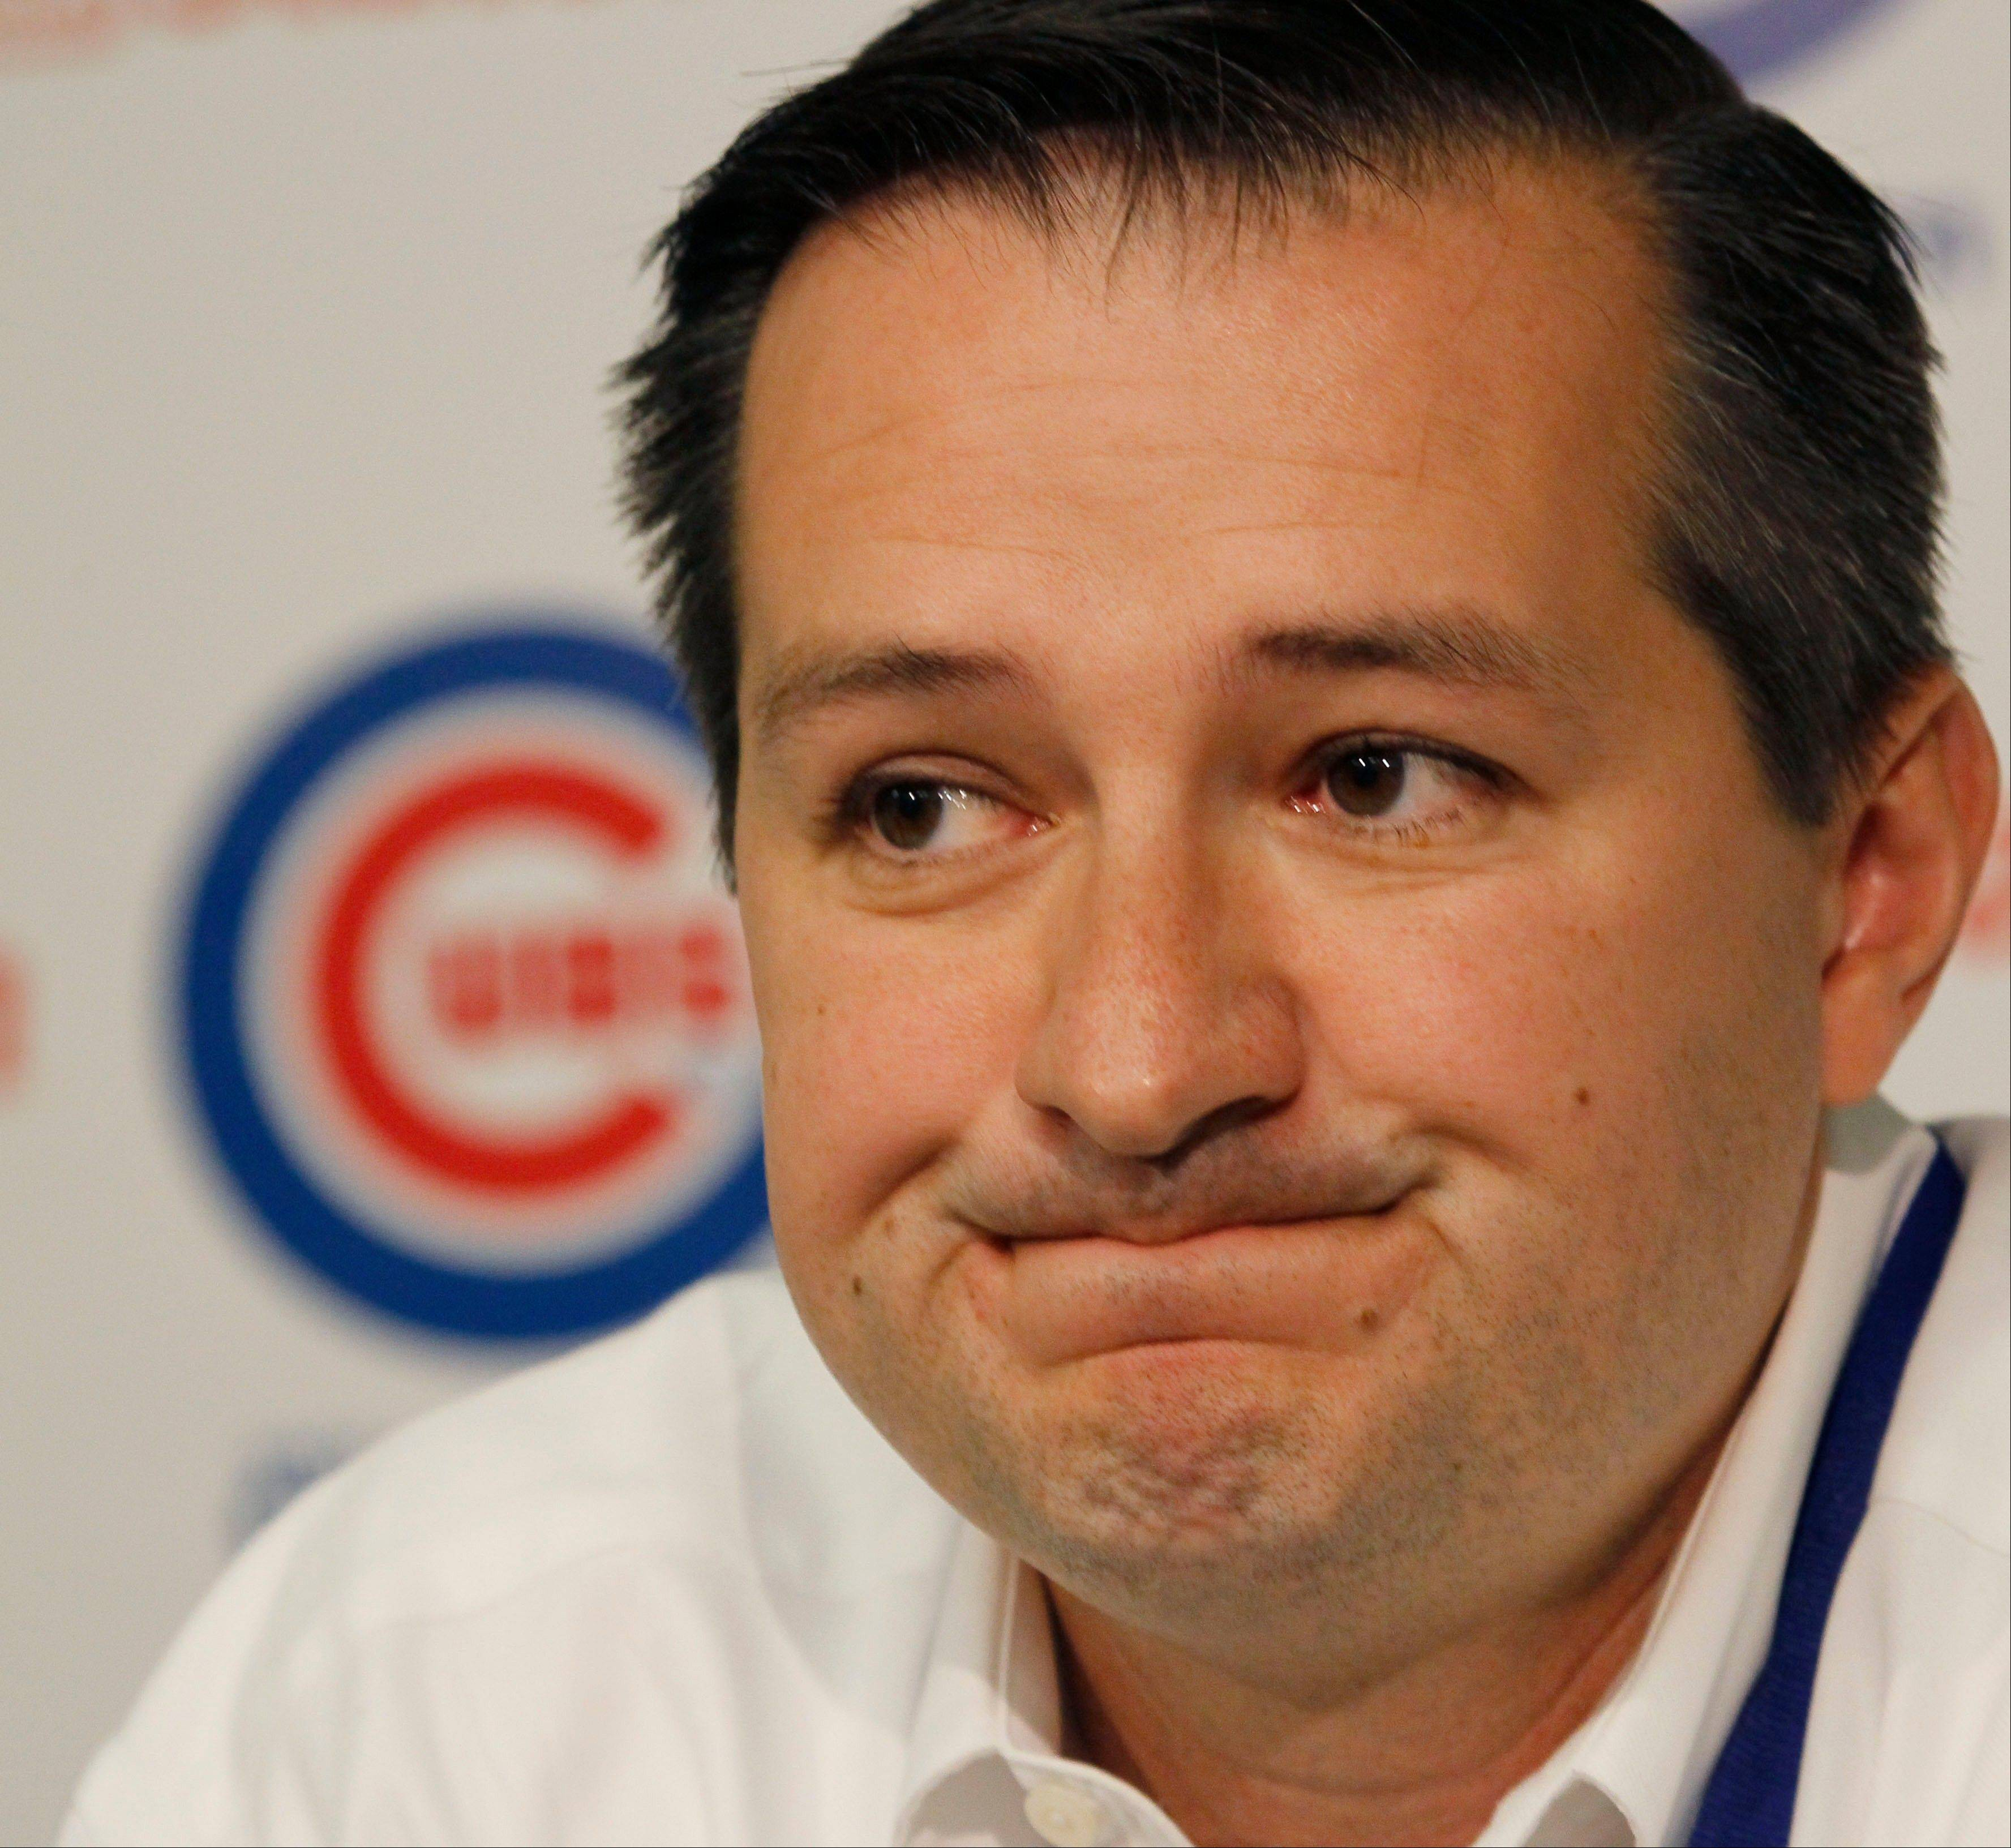 Will Cubs owner Tom Ricketts end up hiring a baseball guy to hire a baseball guy to help turn around his franchise?